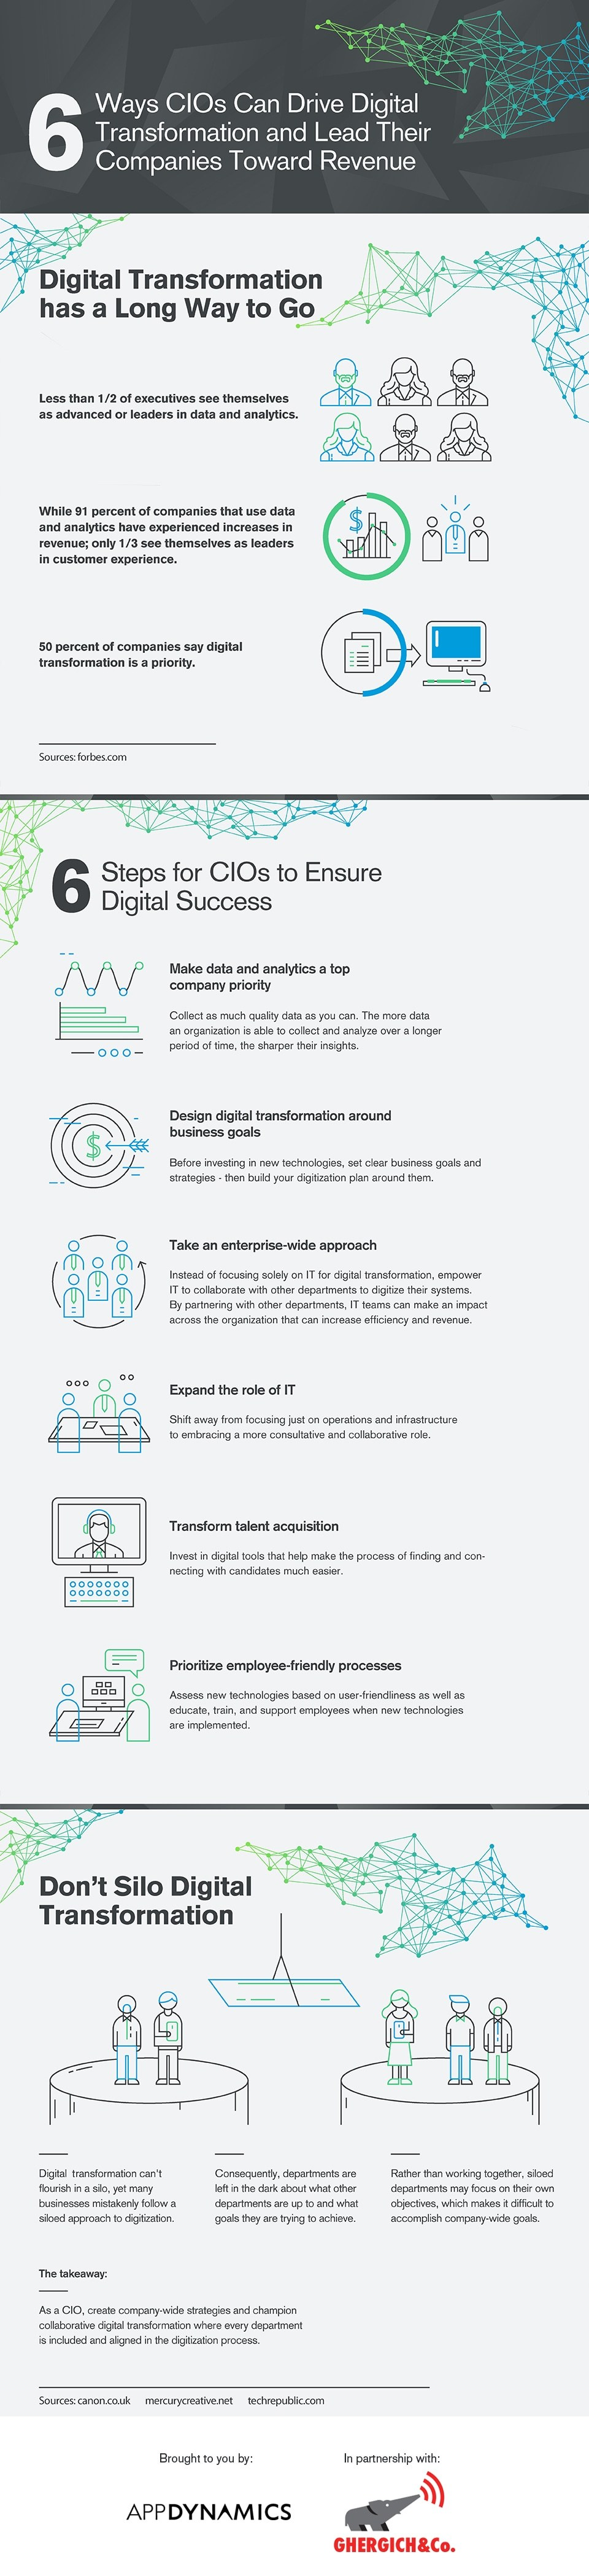 6-ways-cios-can-drive-digital-transformation-and-lead-their-companies-toward-revenue-embed